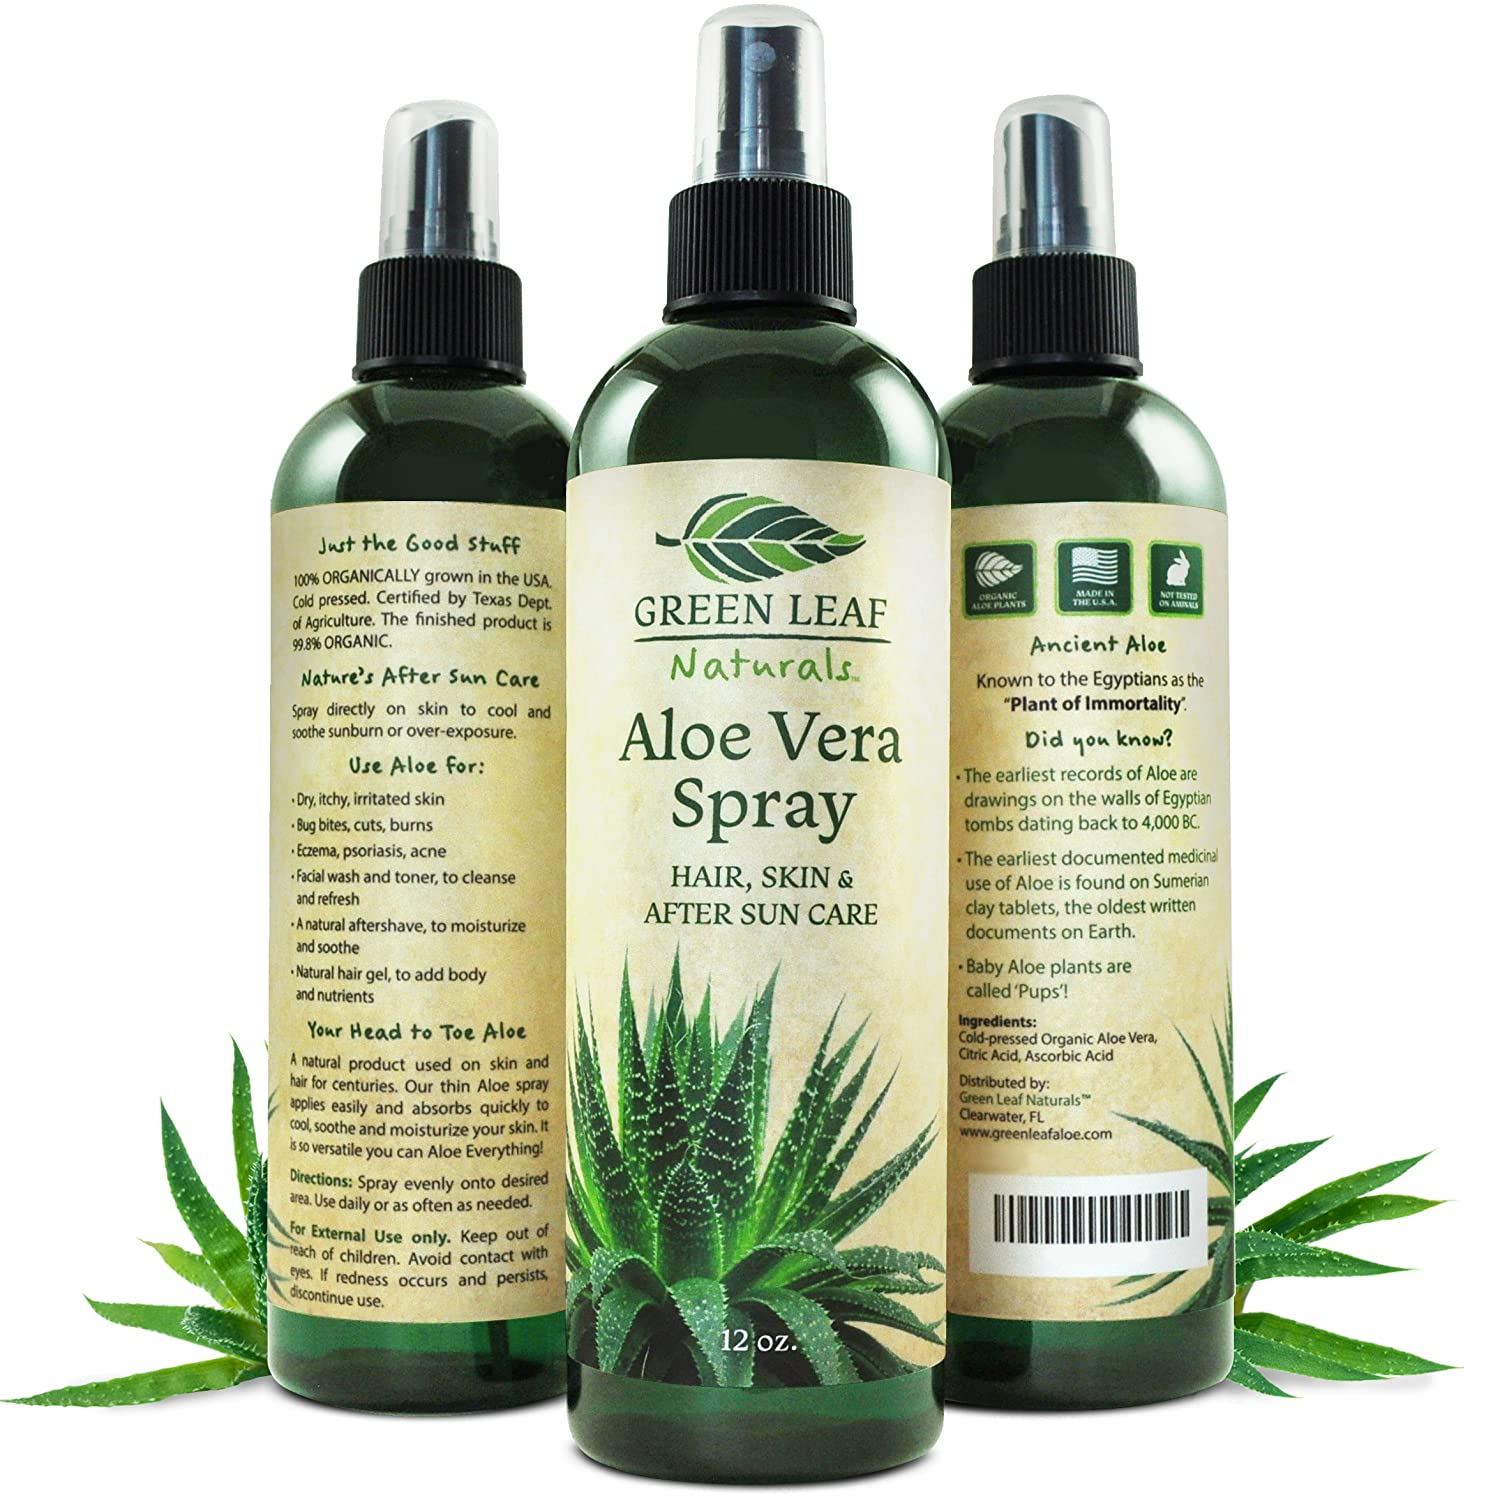 Travel Size Aloe Vera Spray - Pure, Natural, Organic - 3.3 oz - by Green Leaf Naturals